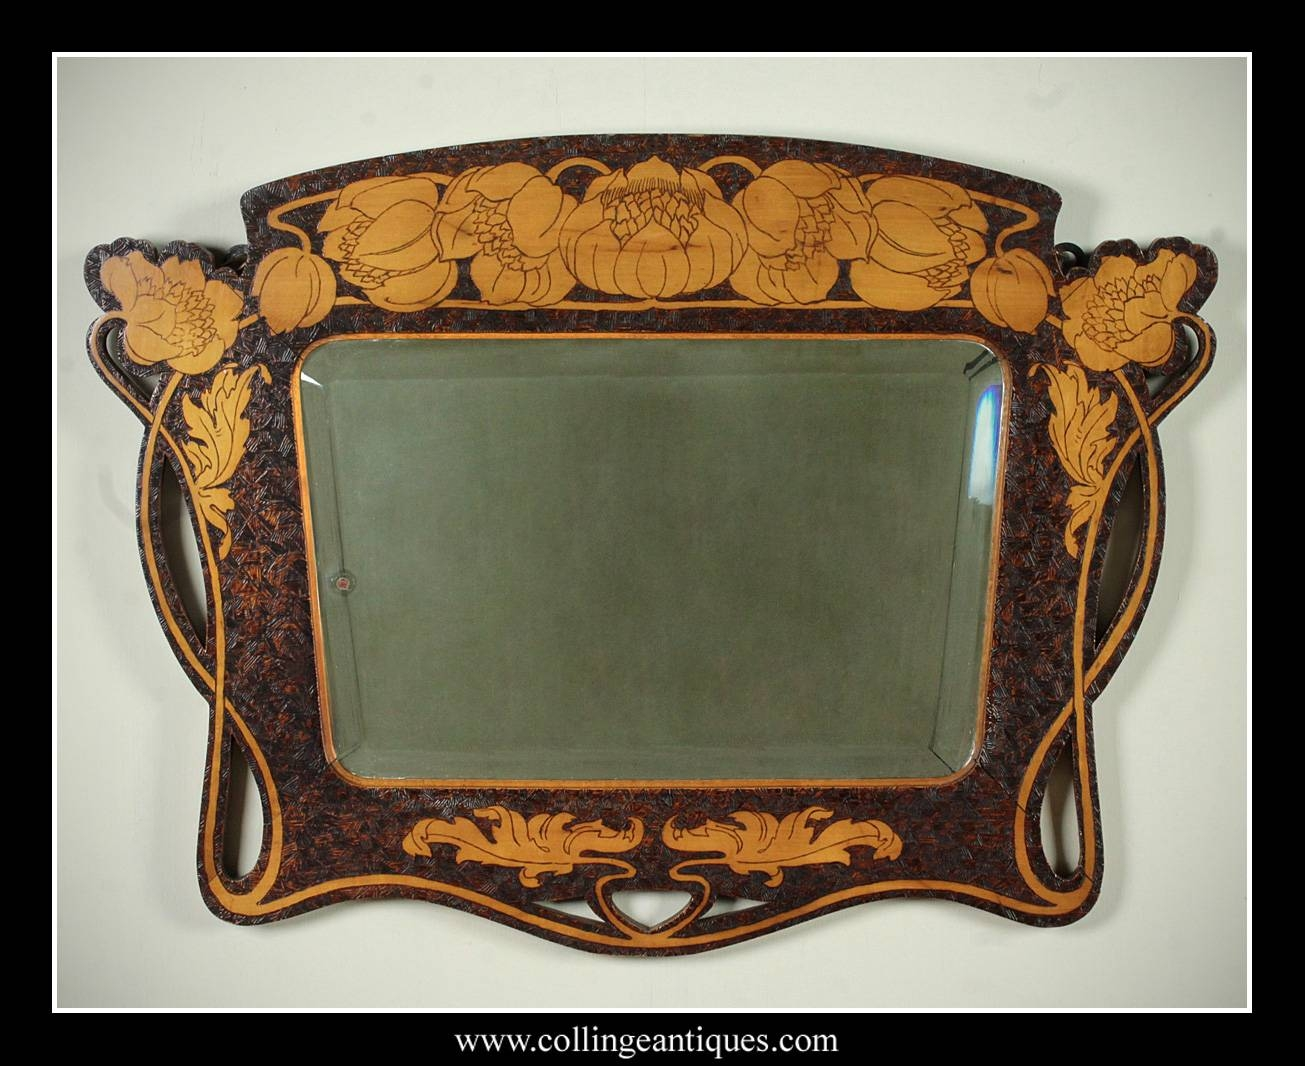 Art Nouveau Pokerwork Mirror. - Collinge Antiques regarding Art Nouveau Mirrors (Image 12 of 25)